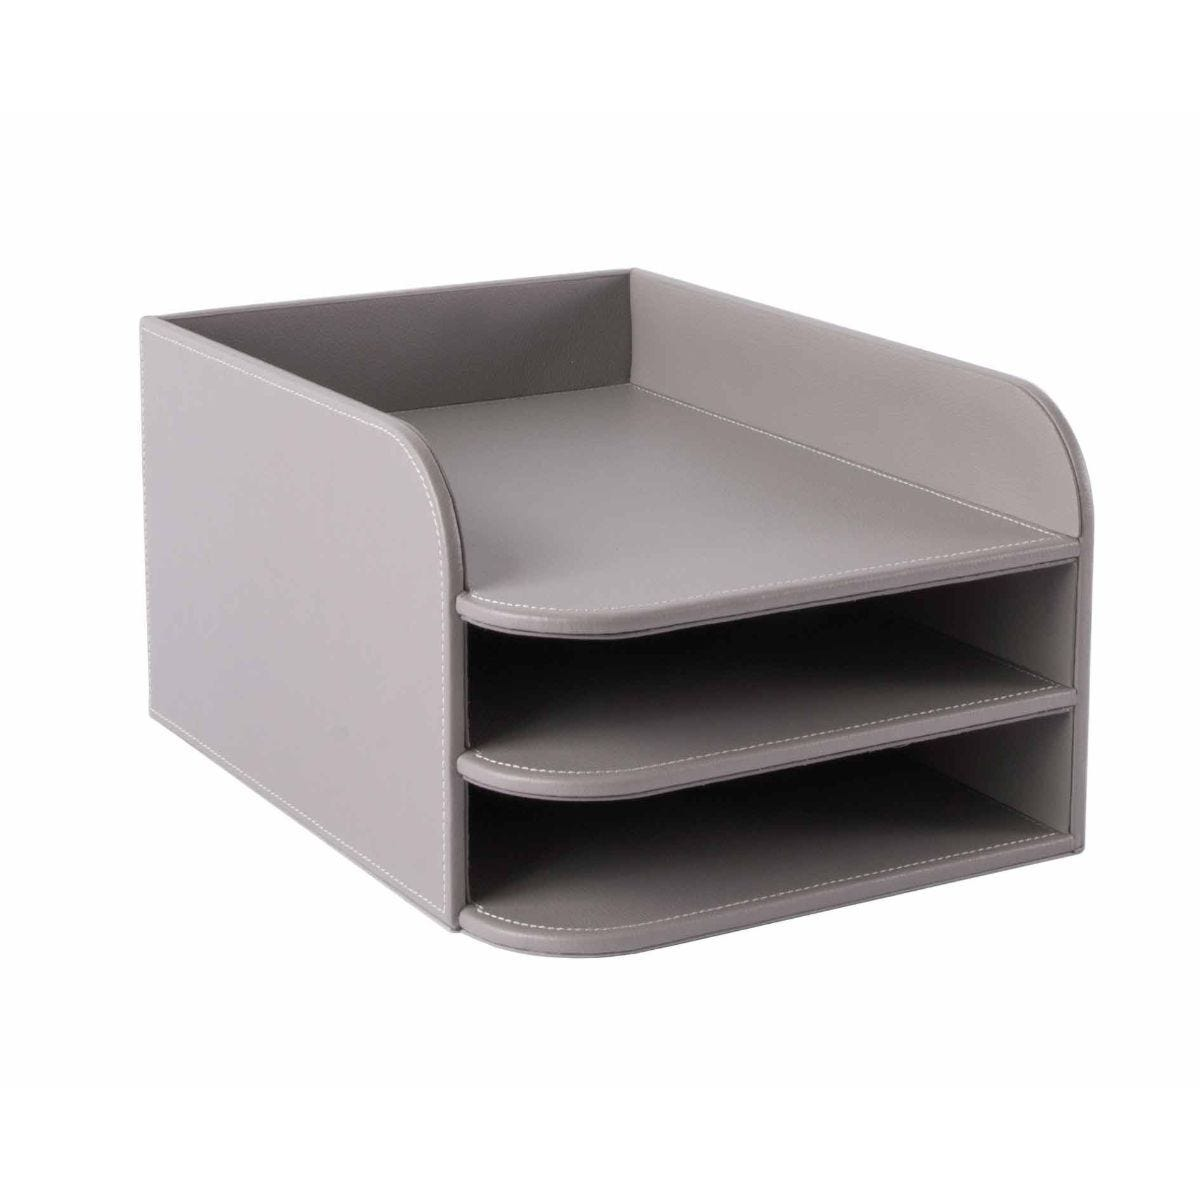 Osco 3 Tier Letter Tray Grey Faux Leather